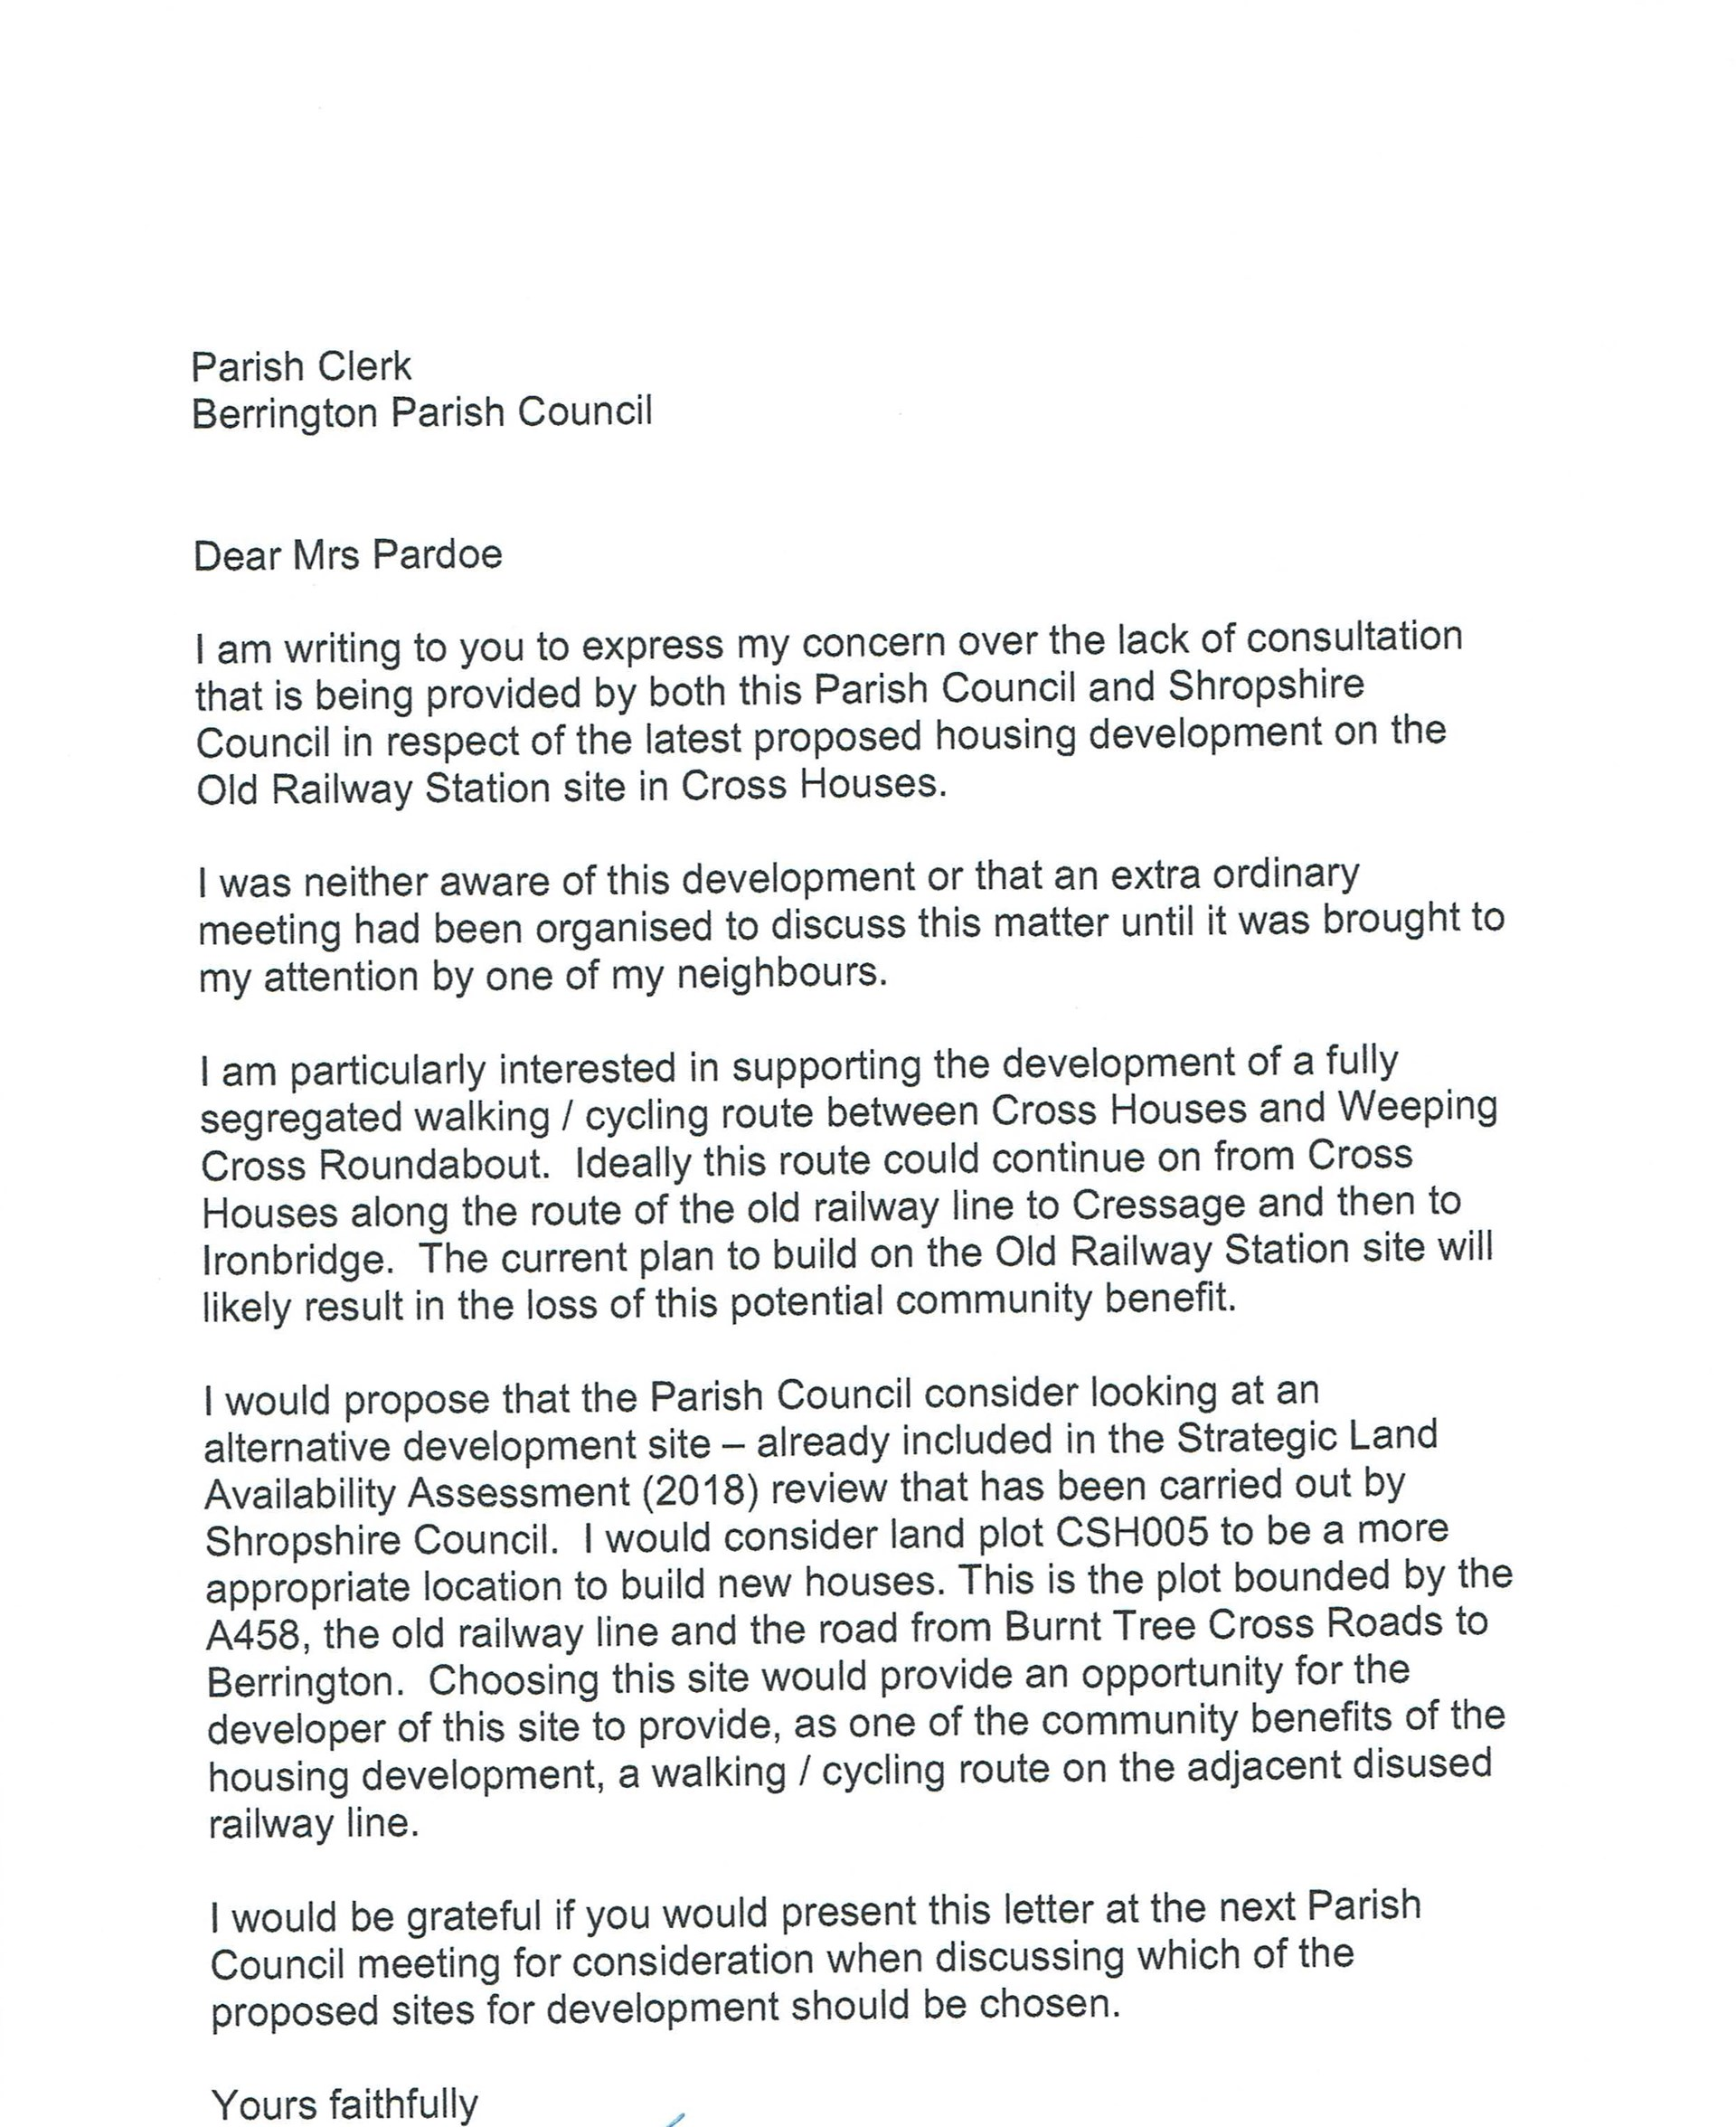 letter received from 20 residents concerning the selected site for Crosshouses